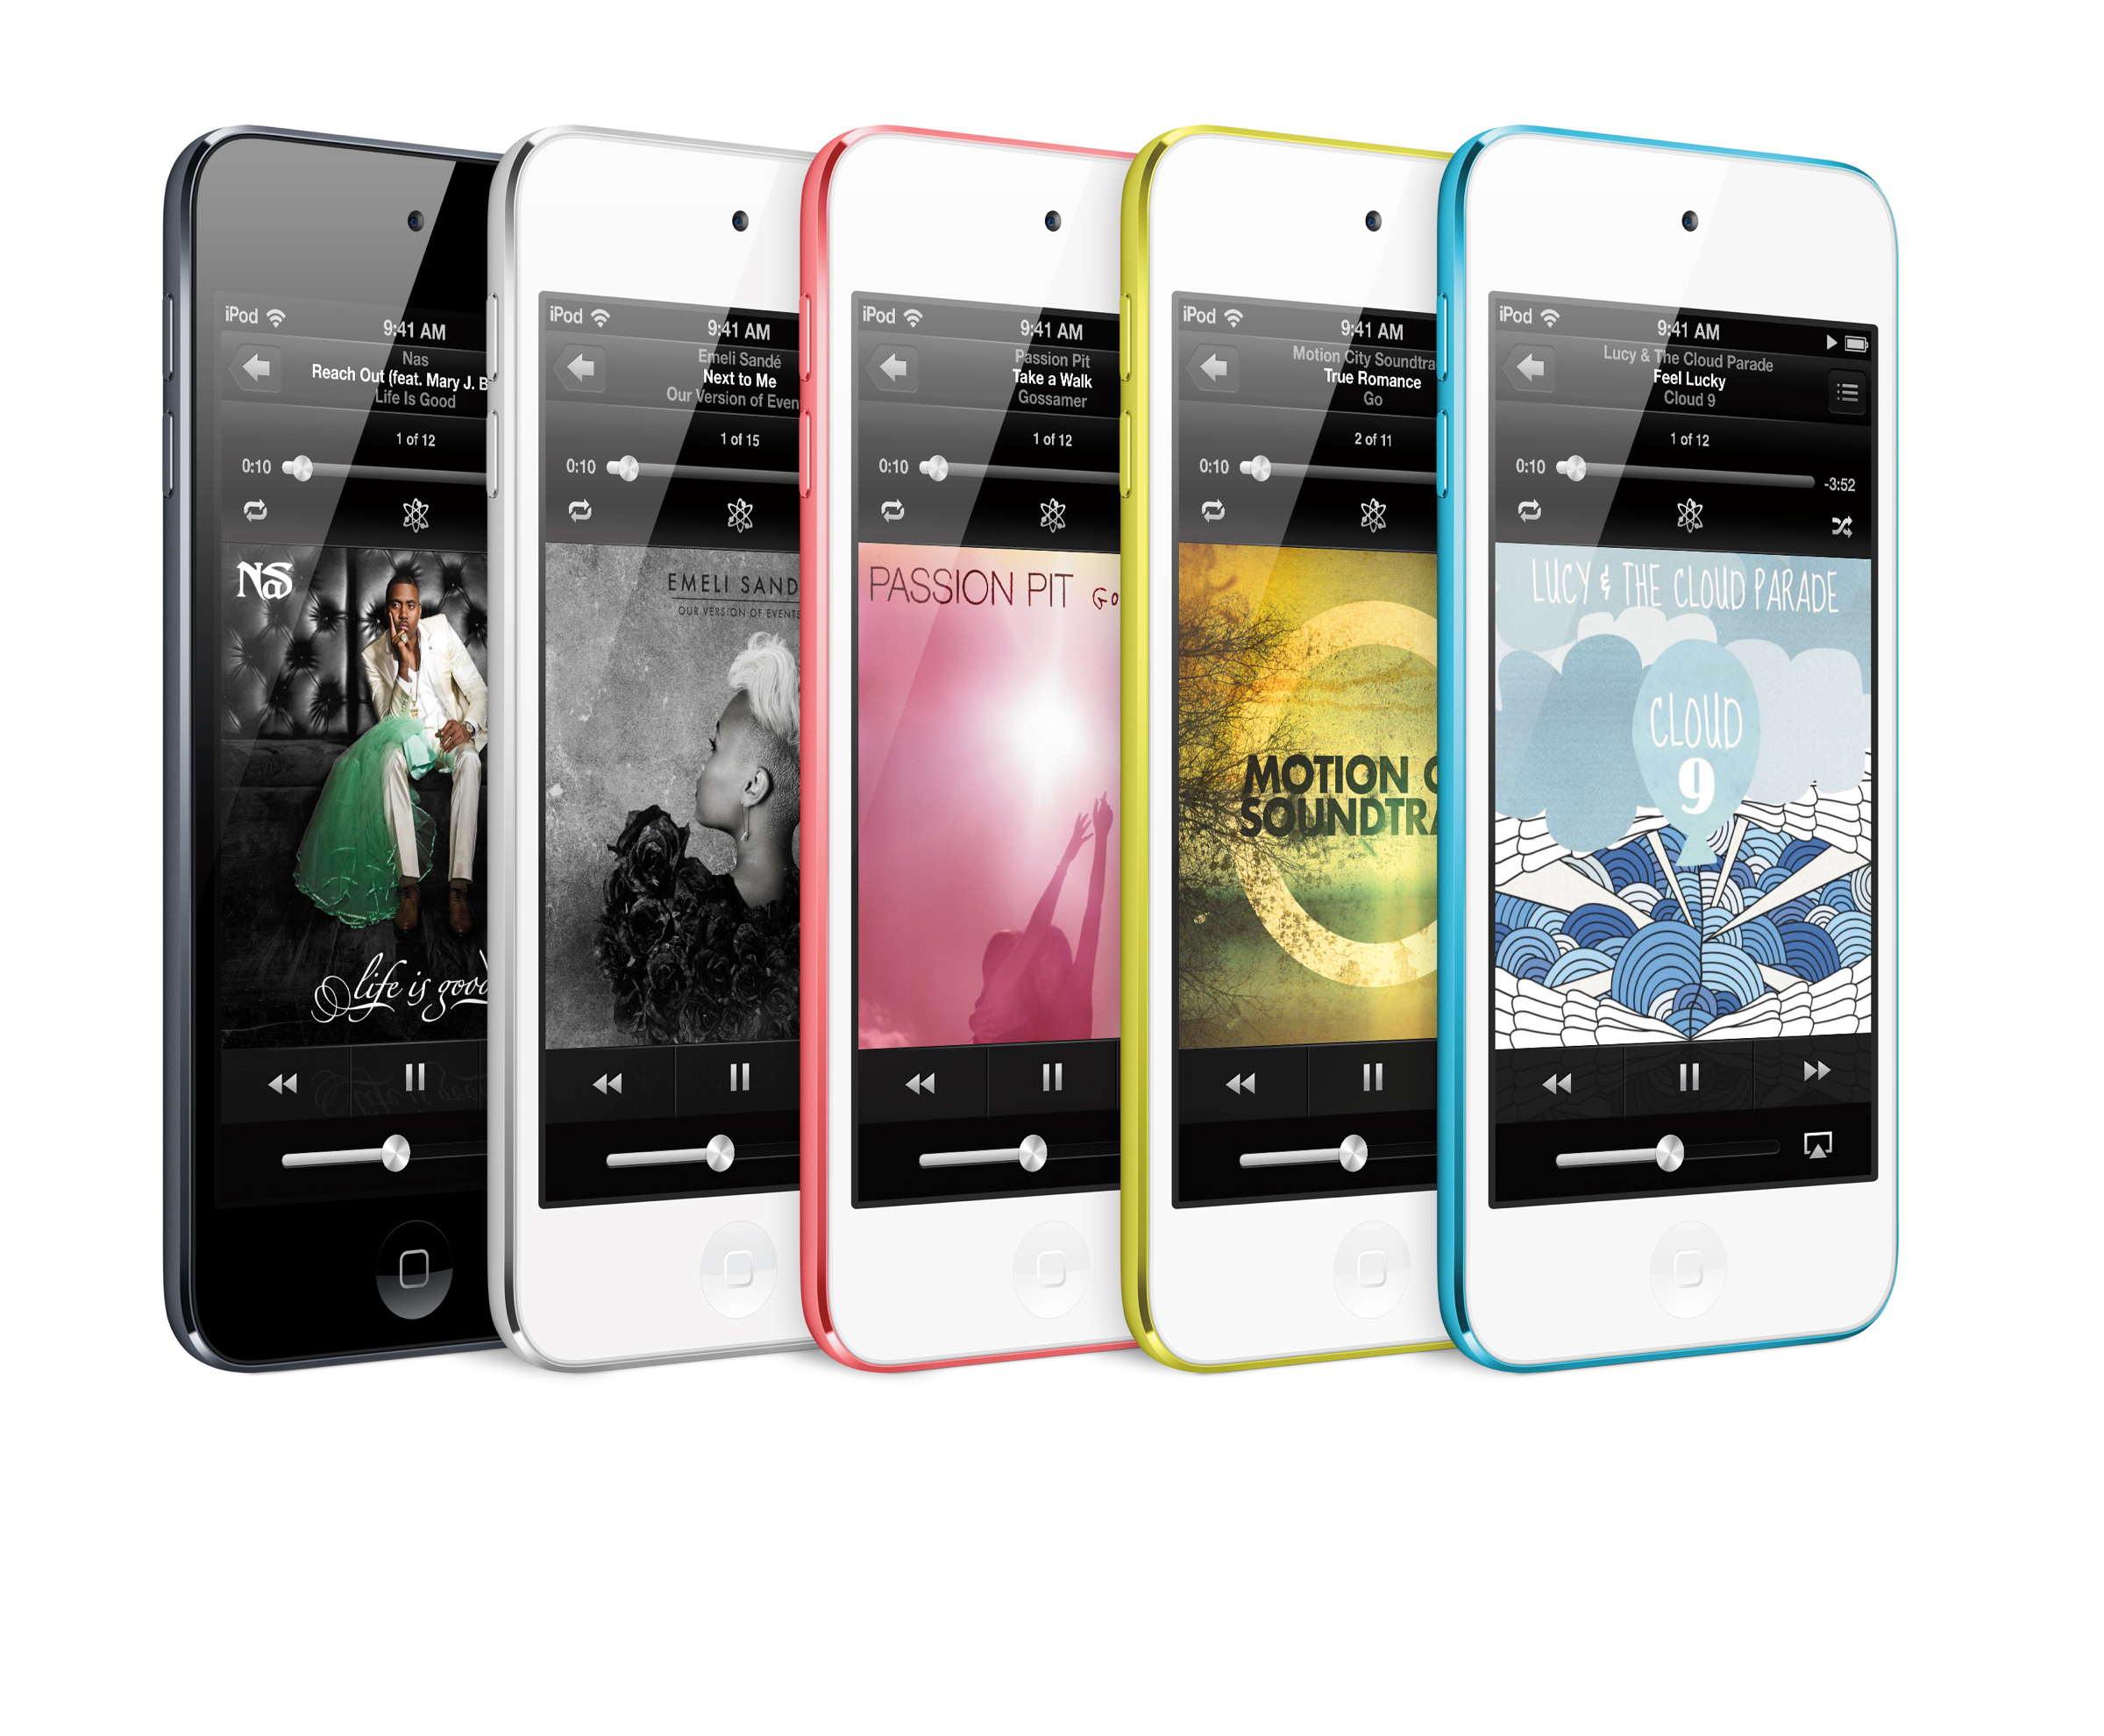 Will the long-ignored iPod finally see a refresh this year?